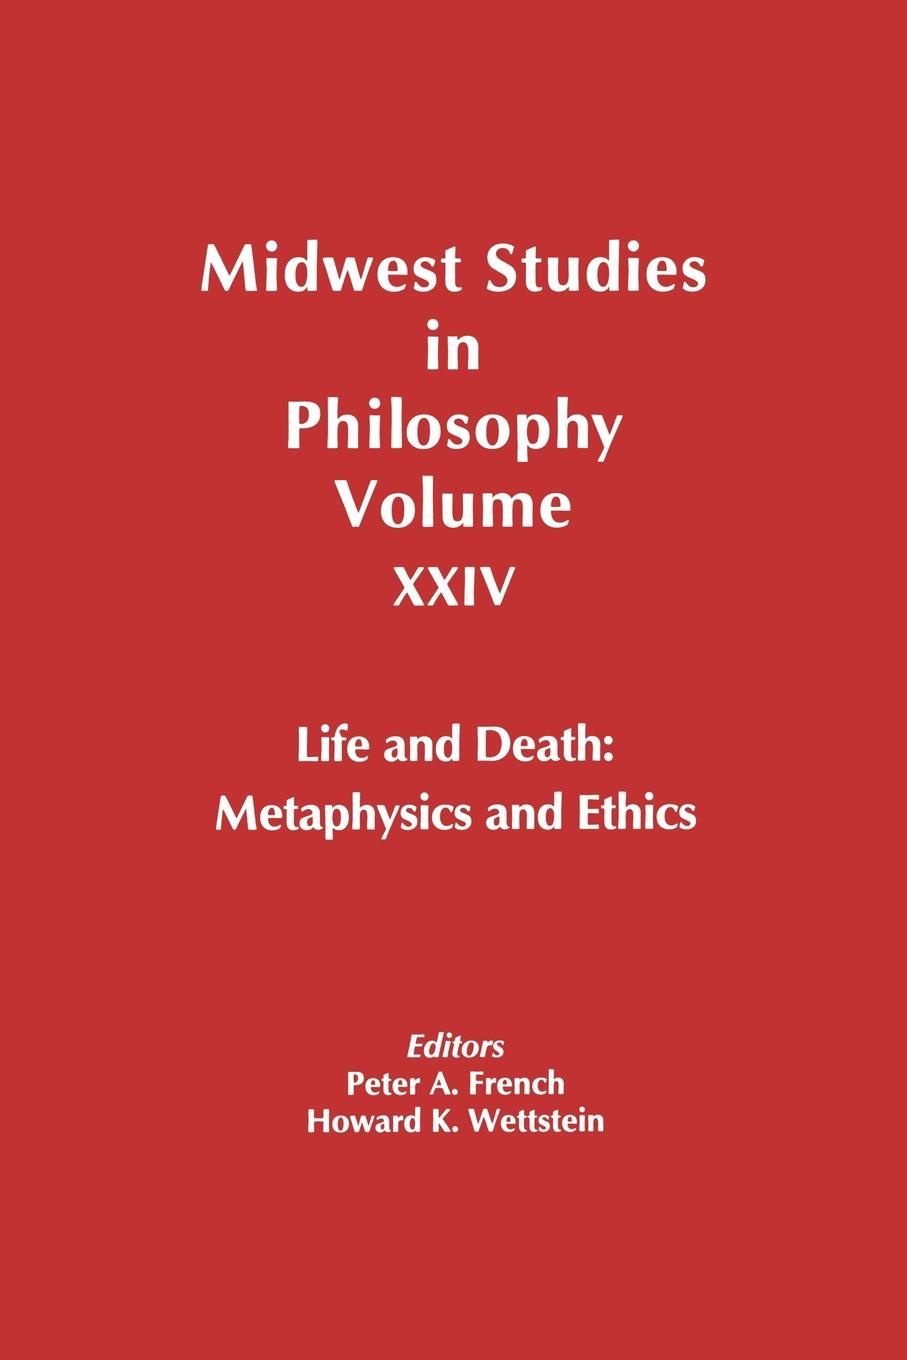 Howard Wettstein, French, Wettstein Midwest Studies in Philosophy, Life and Death. Metaphysics and Ethics oxford studies ancient philosophy